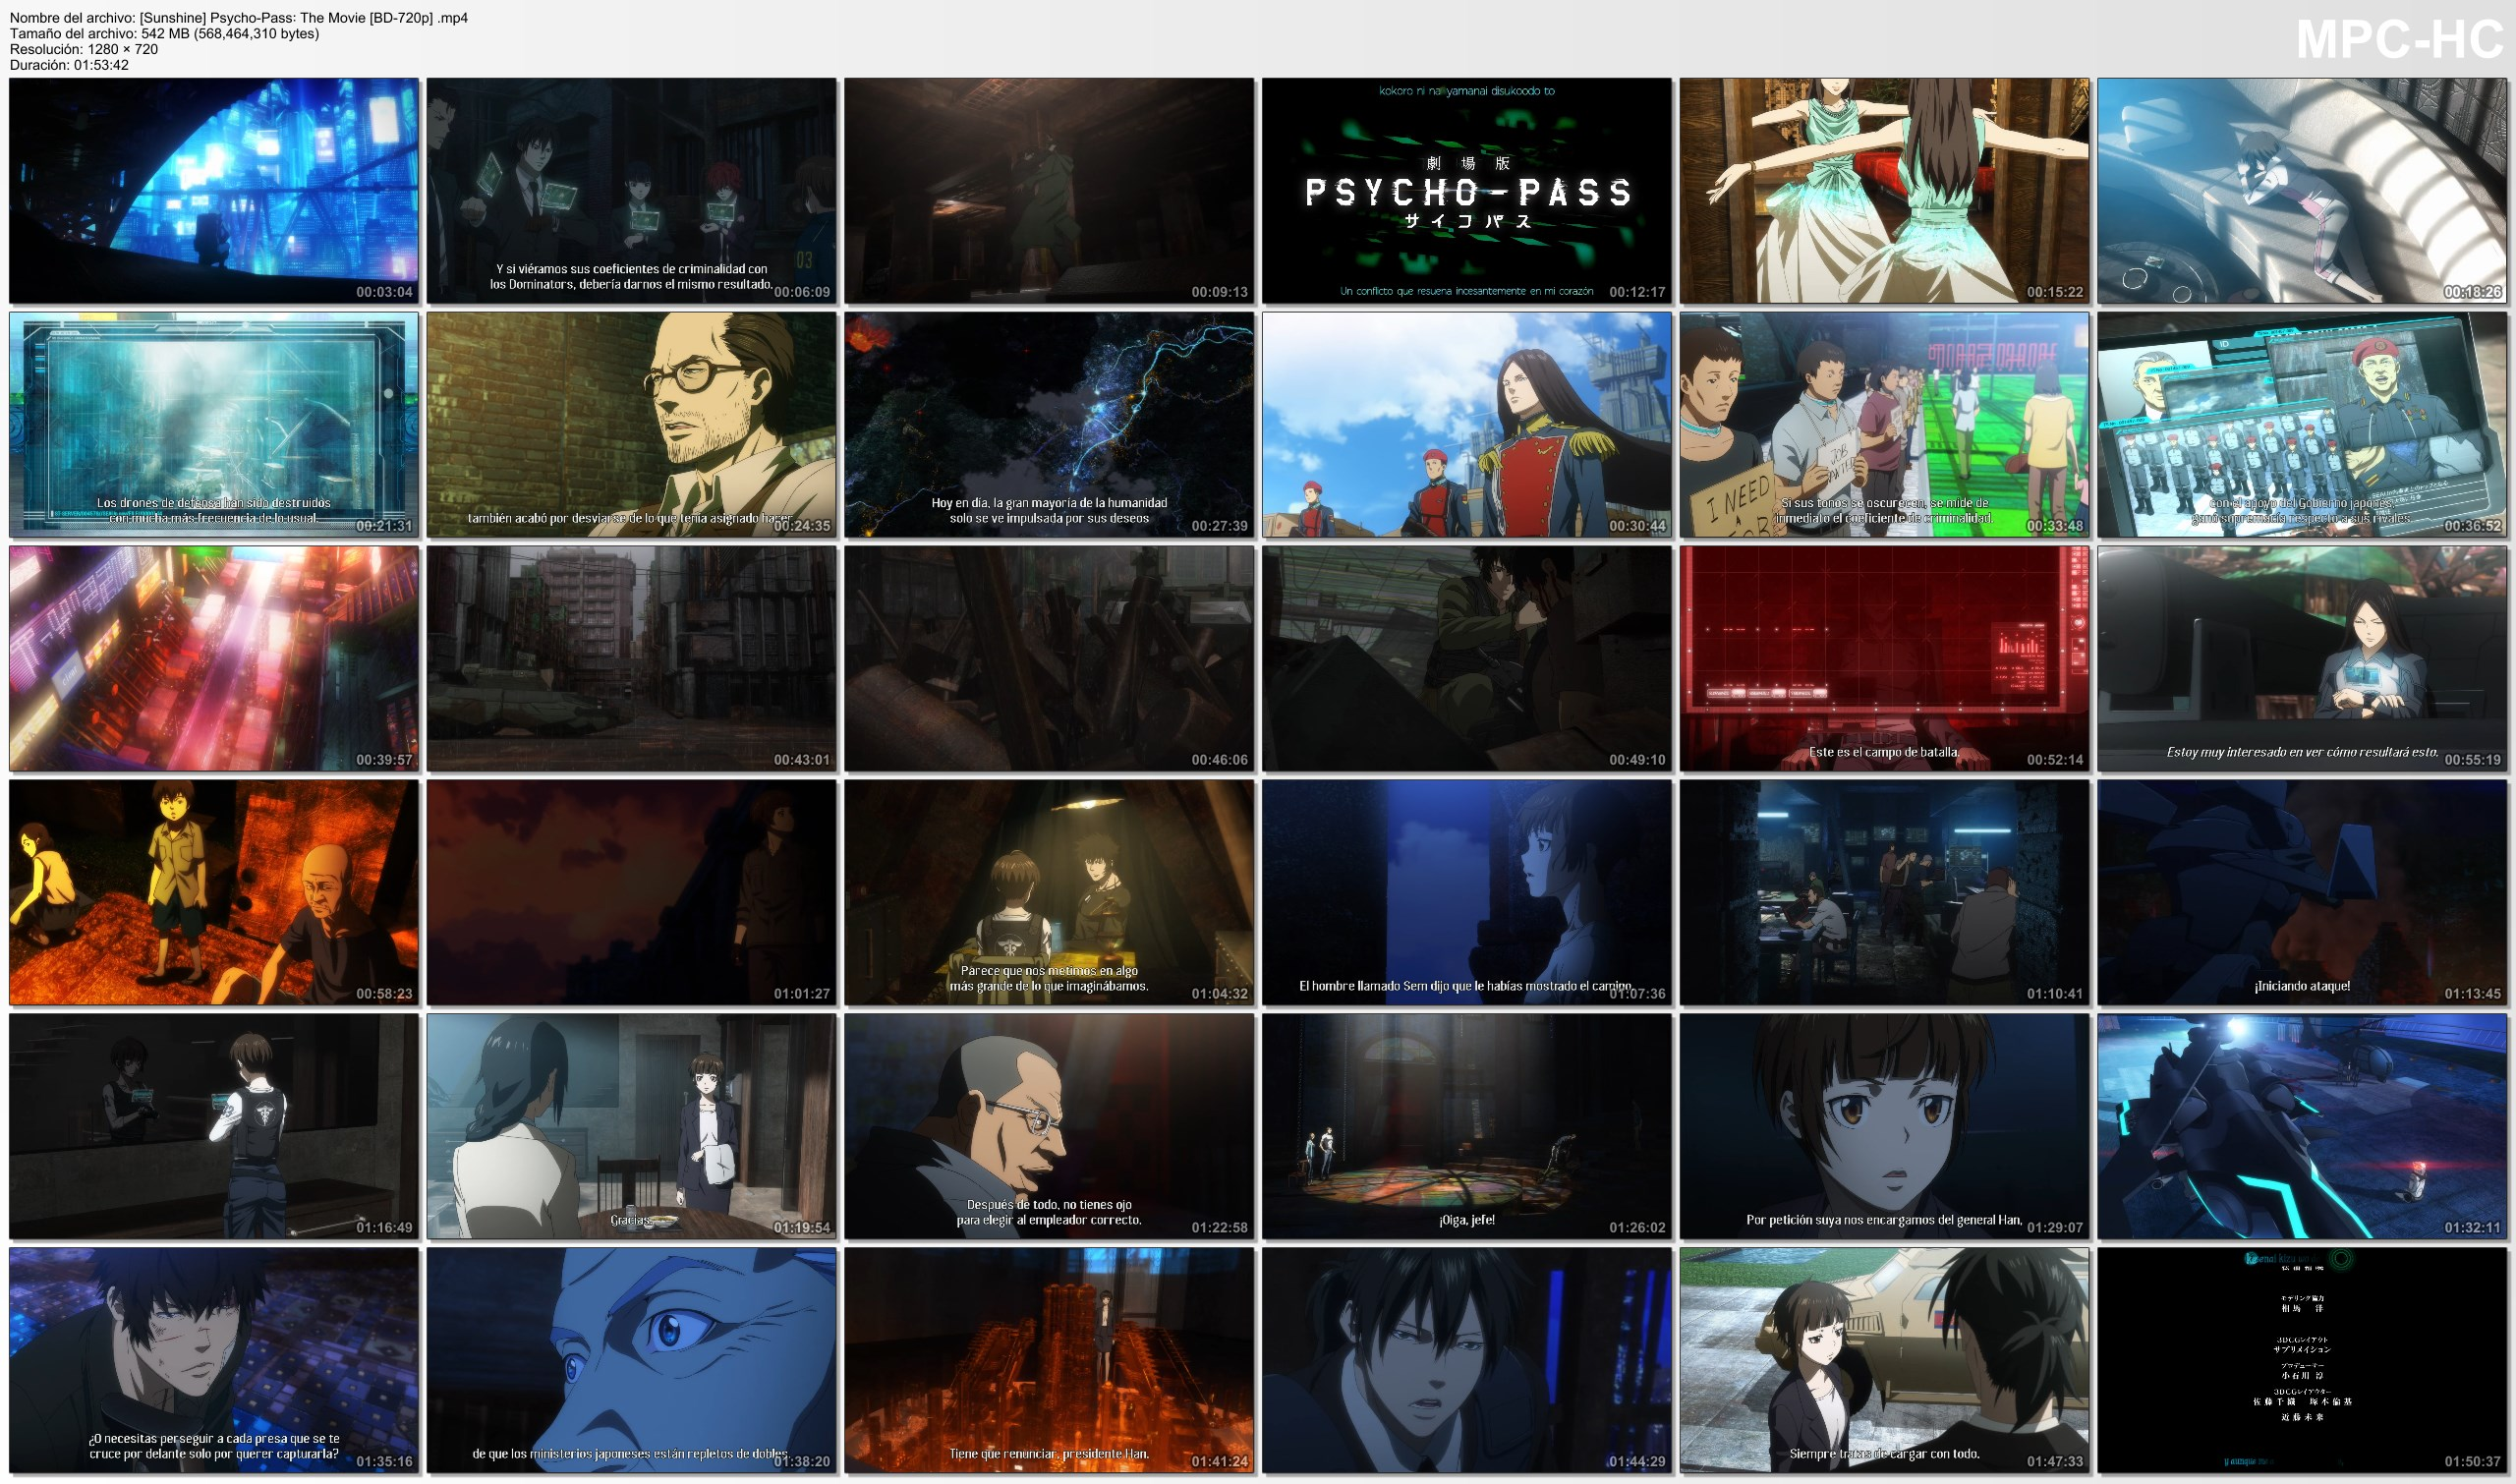 vprnMVRDNkgVY - [Aporte] Psycho-Pass: The Movie [Pelicula][BD-720p][540Mb][MEGA] - Anime Ligero [Descargas]